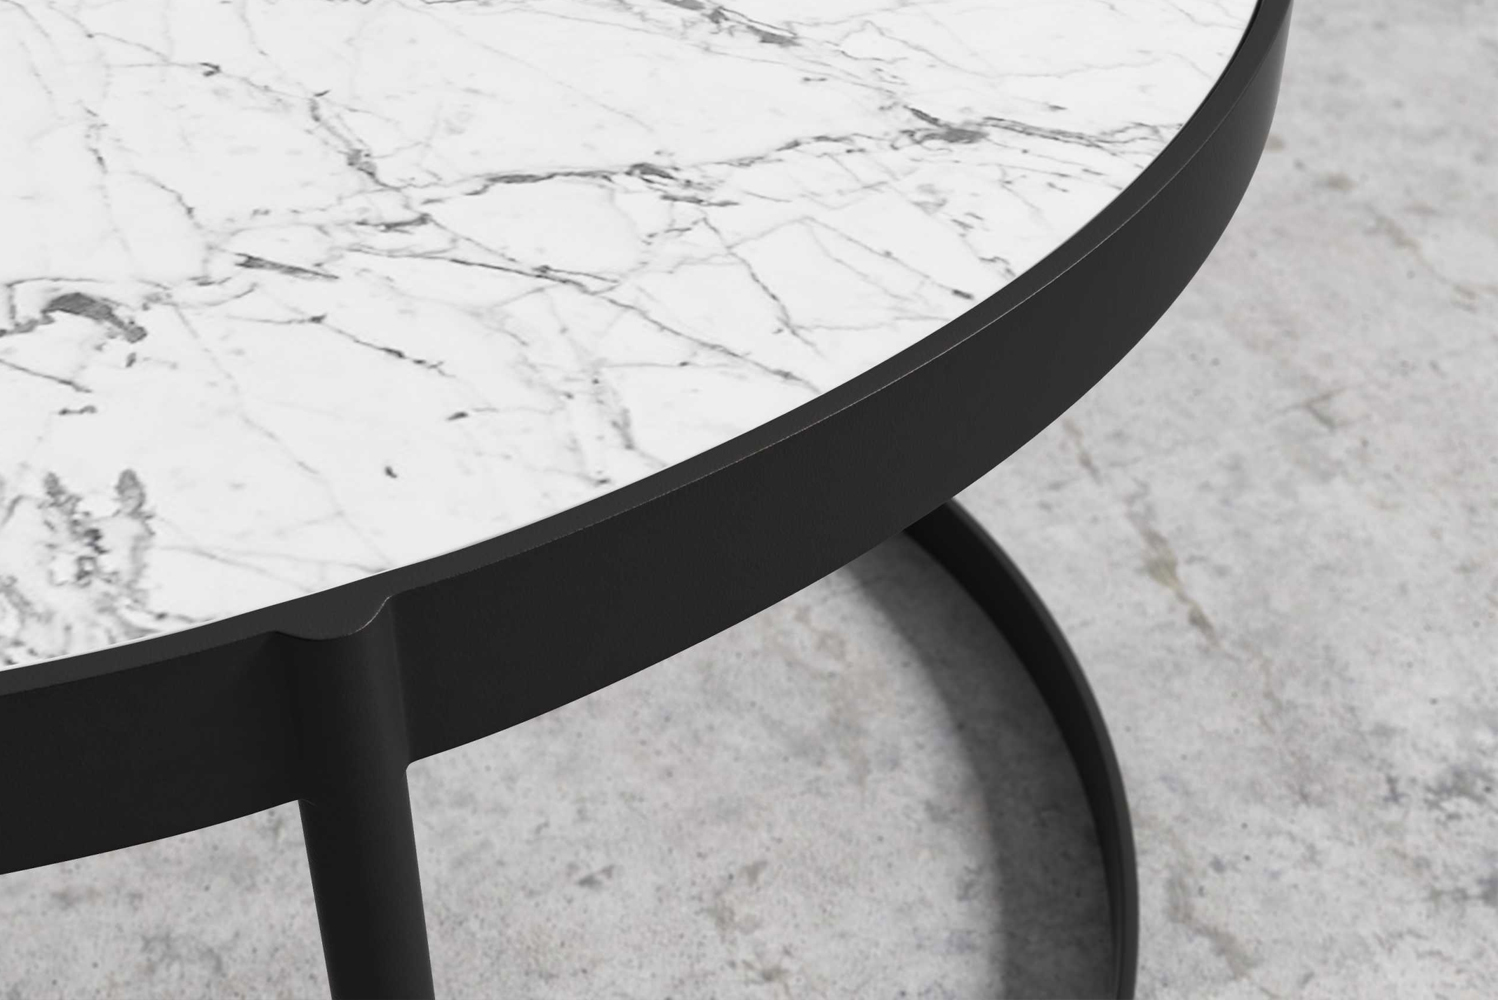 This minimalist table is available in black or white marble and comes in both coffee or side table configurations.